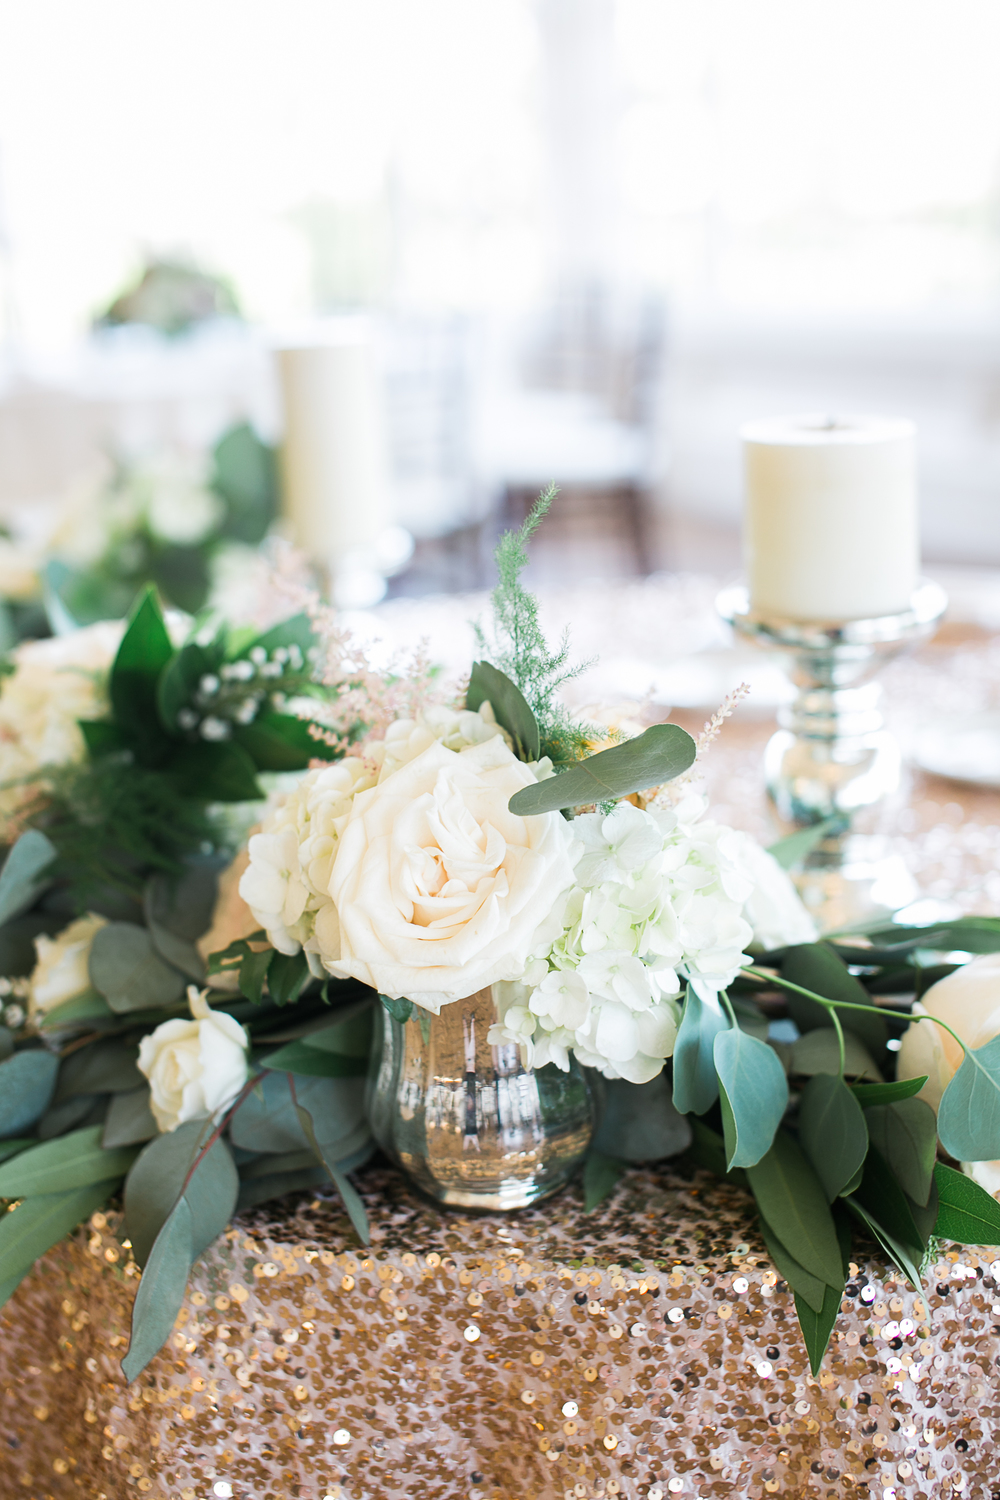 Blush & ivory, sweetheart table decor by San Diego wedding florist, Compass Floral.